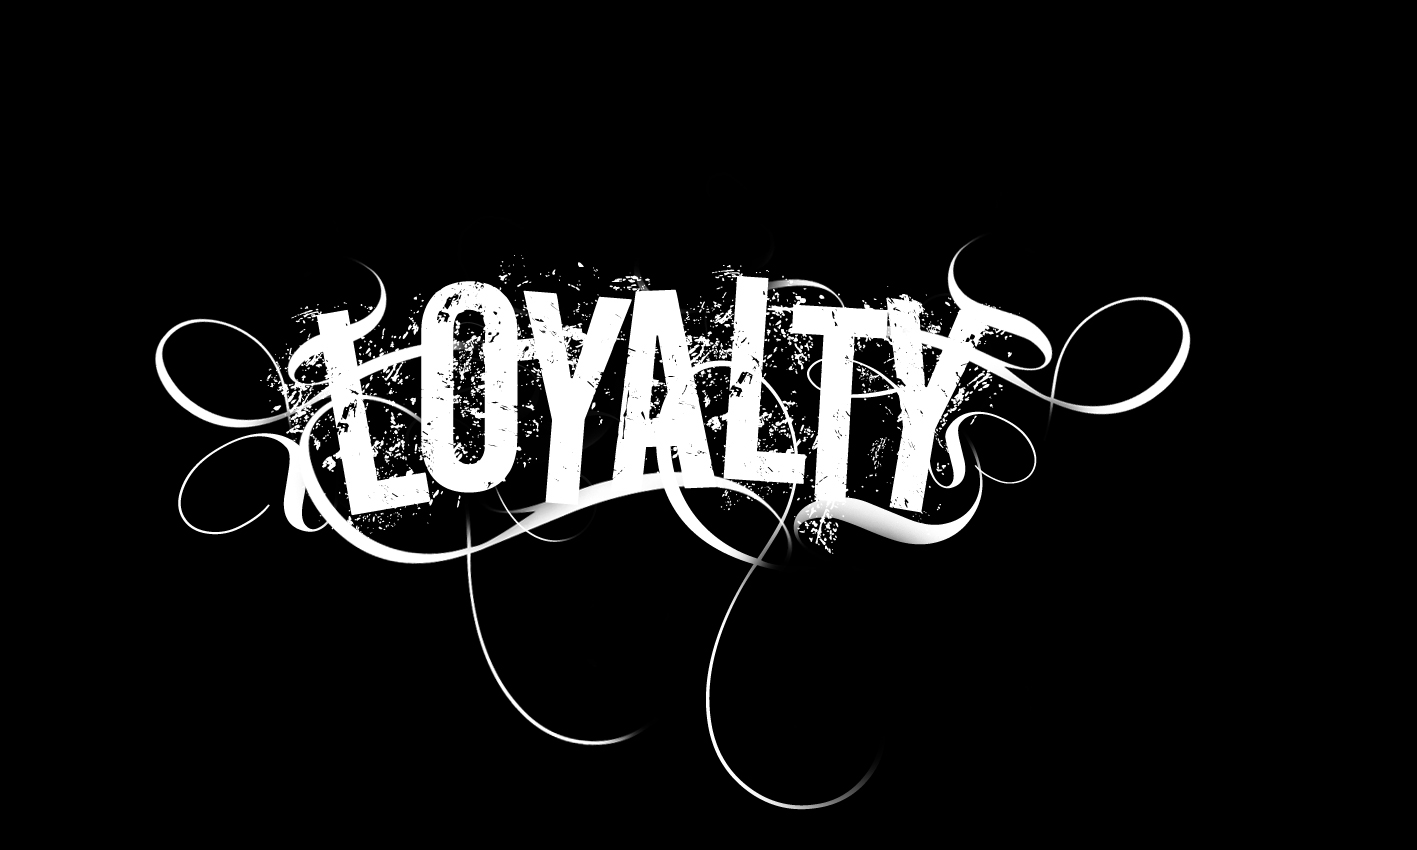 Designs quotes about loyalty quotes about loyalty quotes about loyalty - Quotes On Loyalty